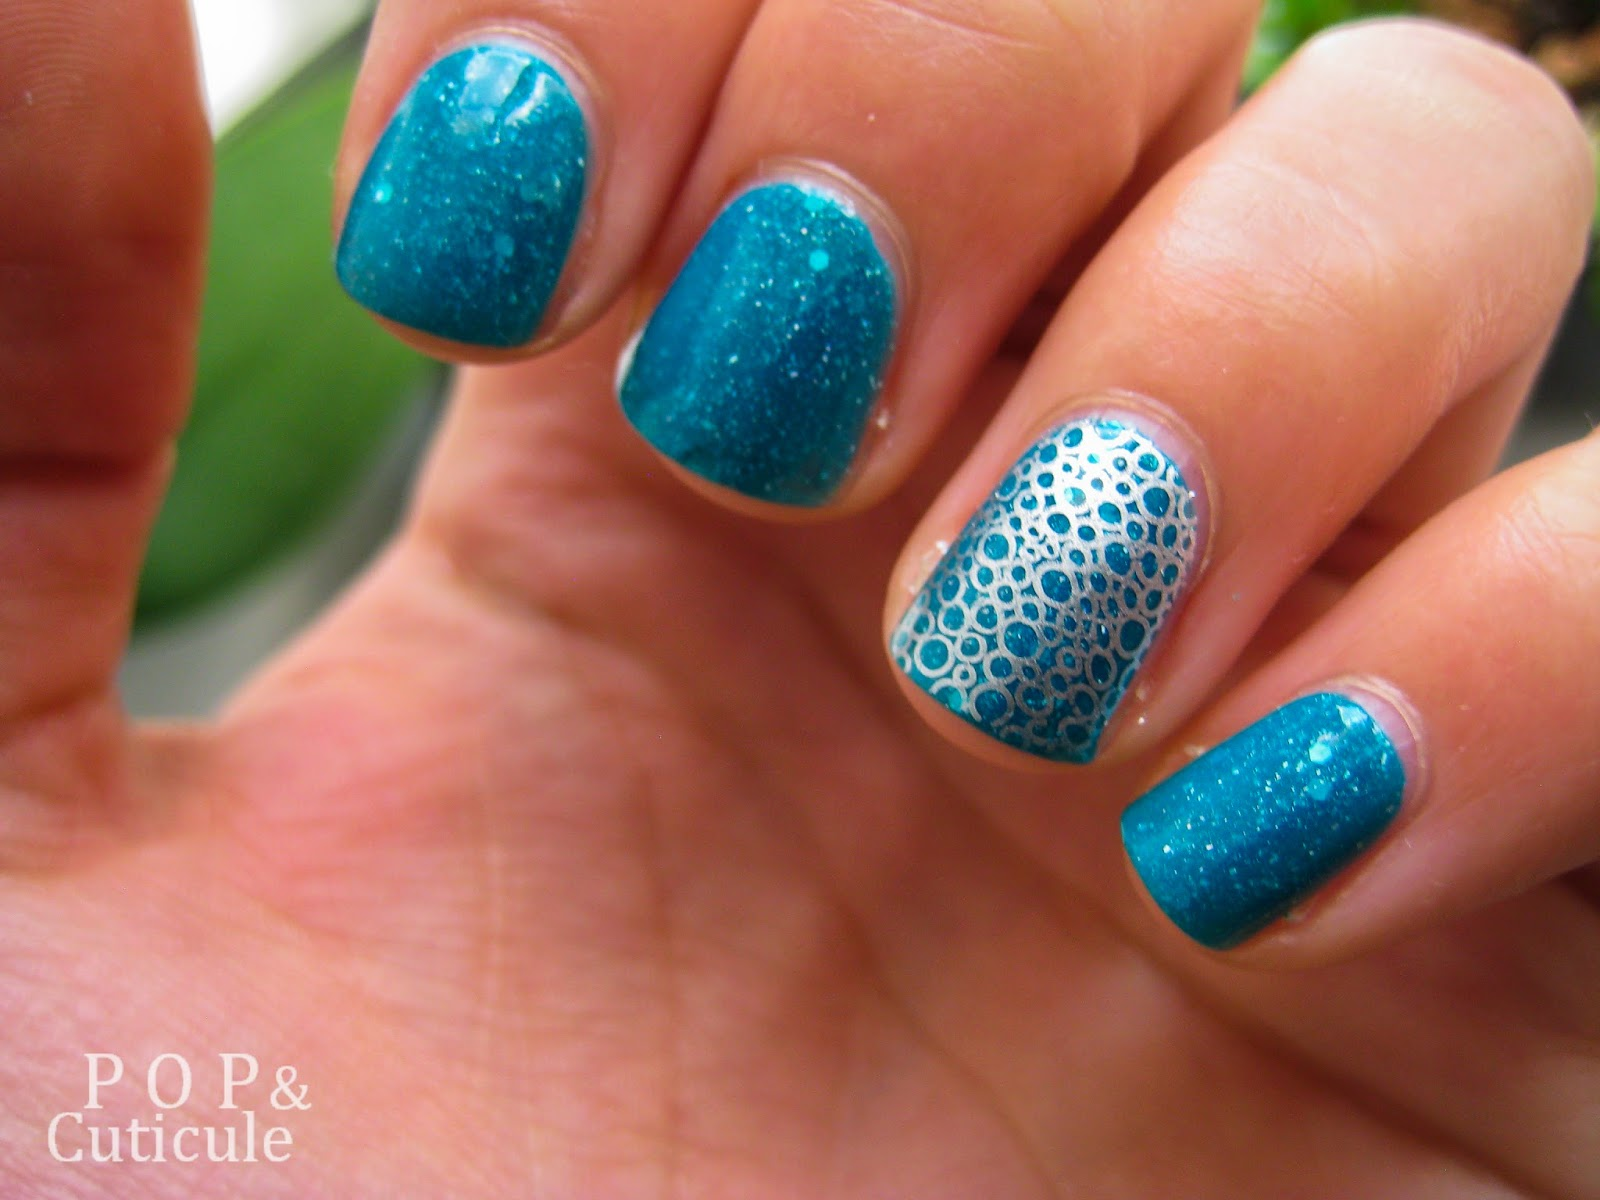 Pop & Cuticule Lagoon Picture Polish